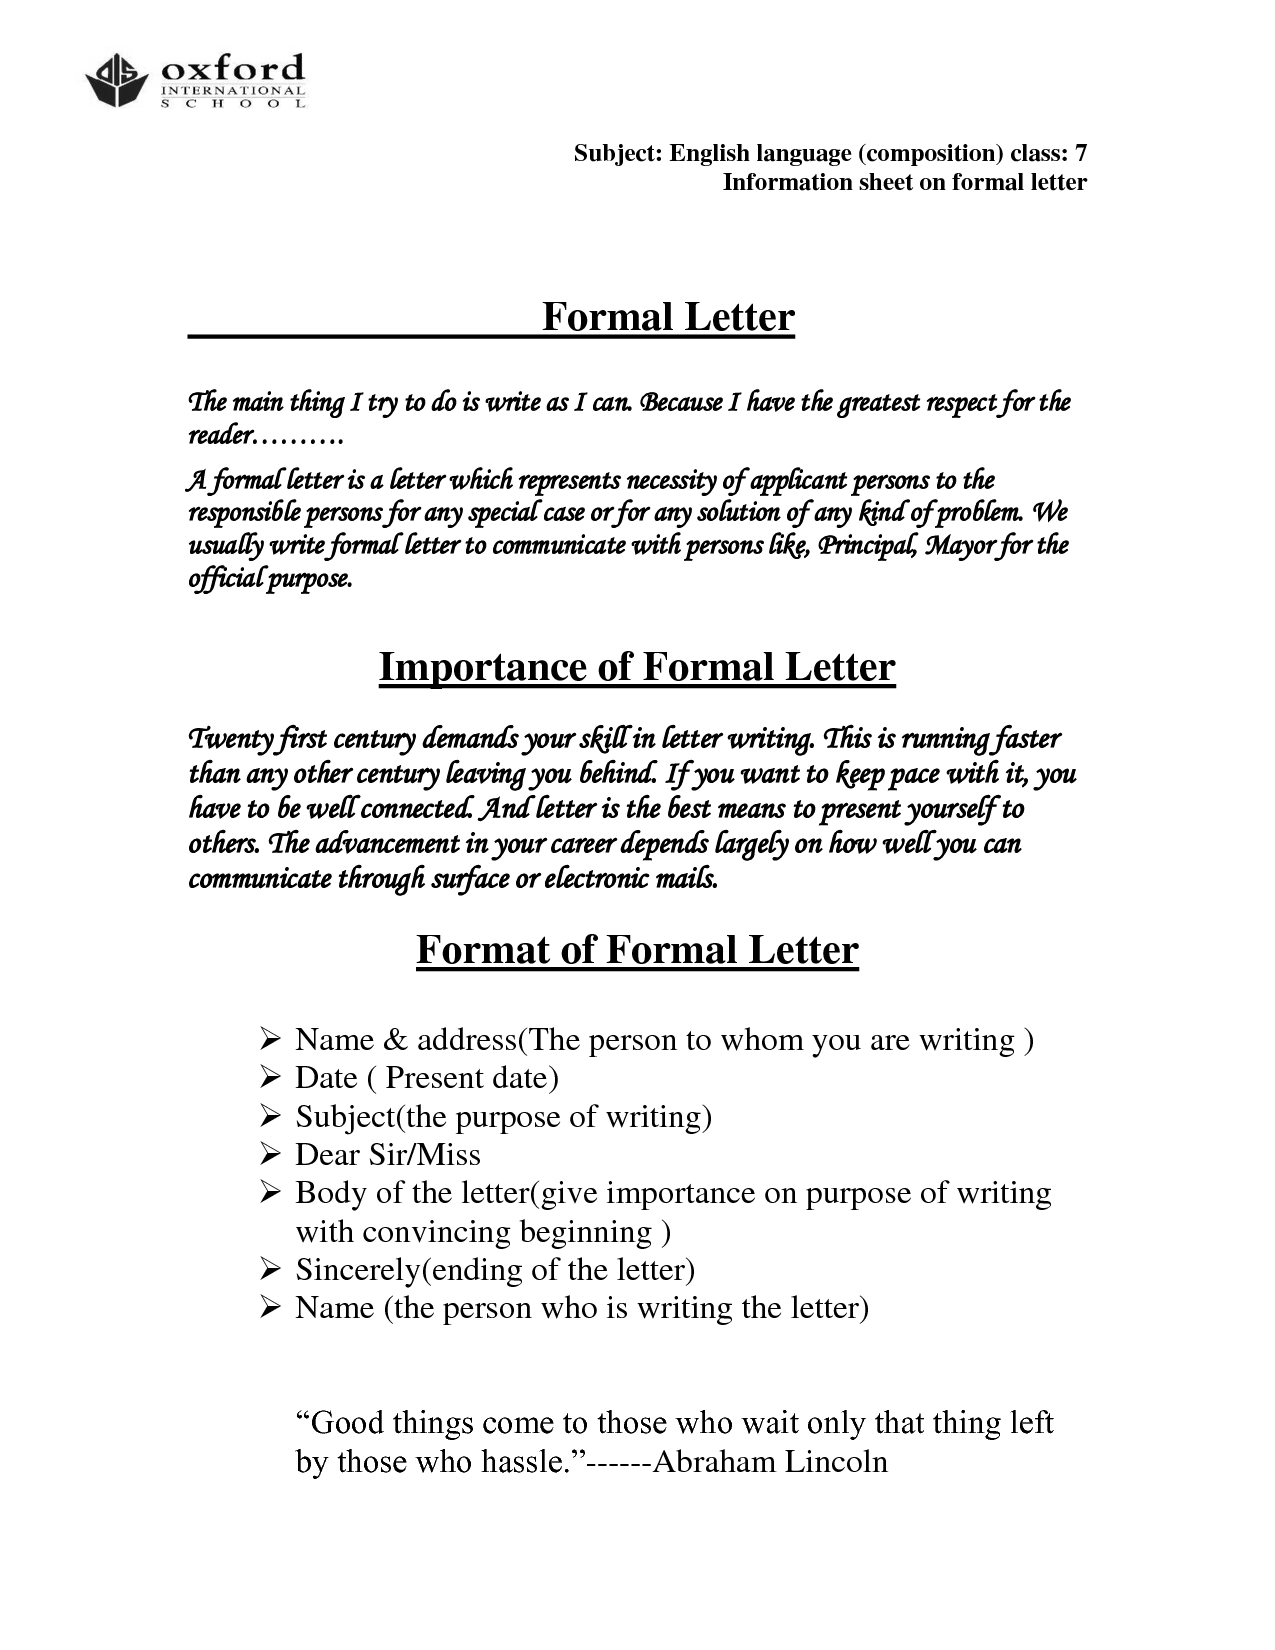 Official Letter Format TemplateOfficial Letter Business Letter – Sample Formal Letter Format